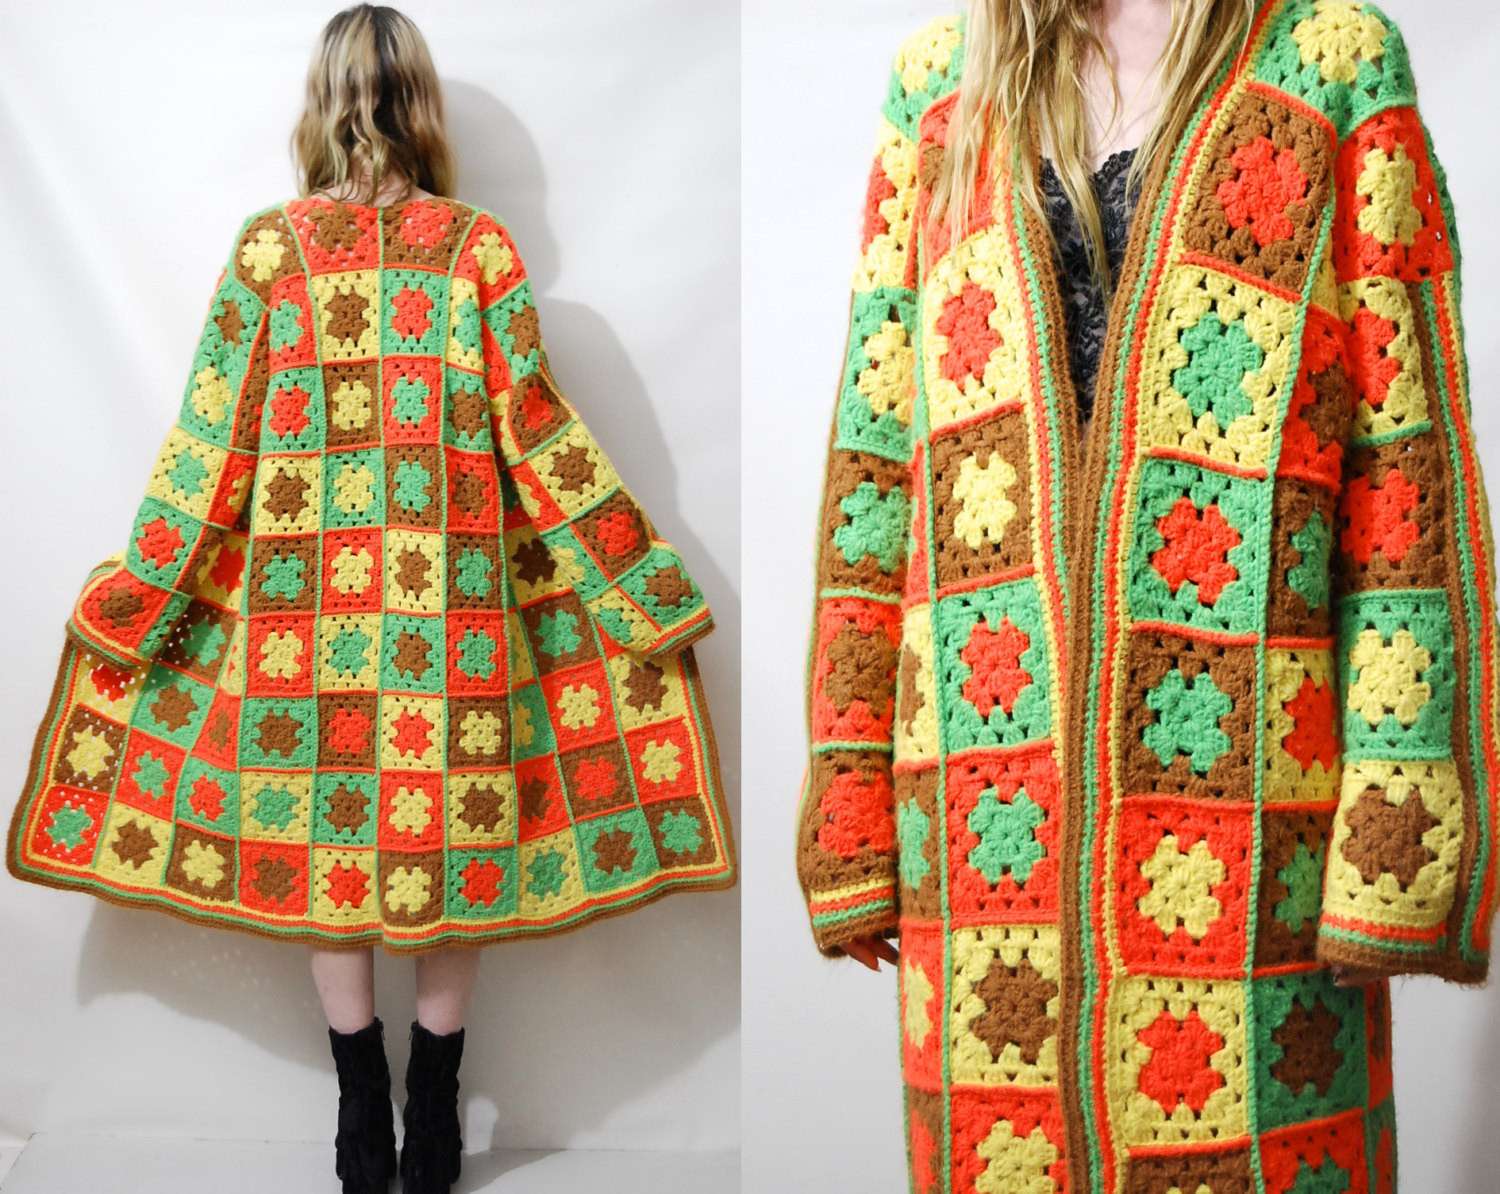 Best Of Knitting and Crochet Donations & A Challenge Crochet Coat Of Amazing 45 Pics Crochet Coat